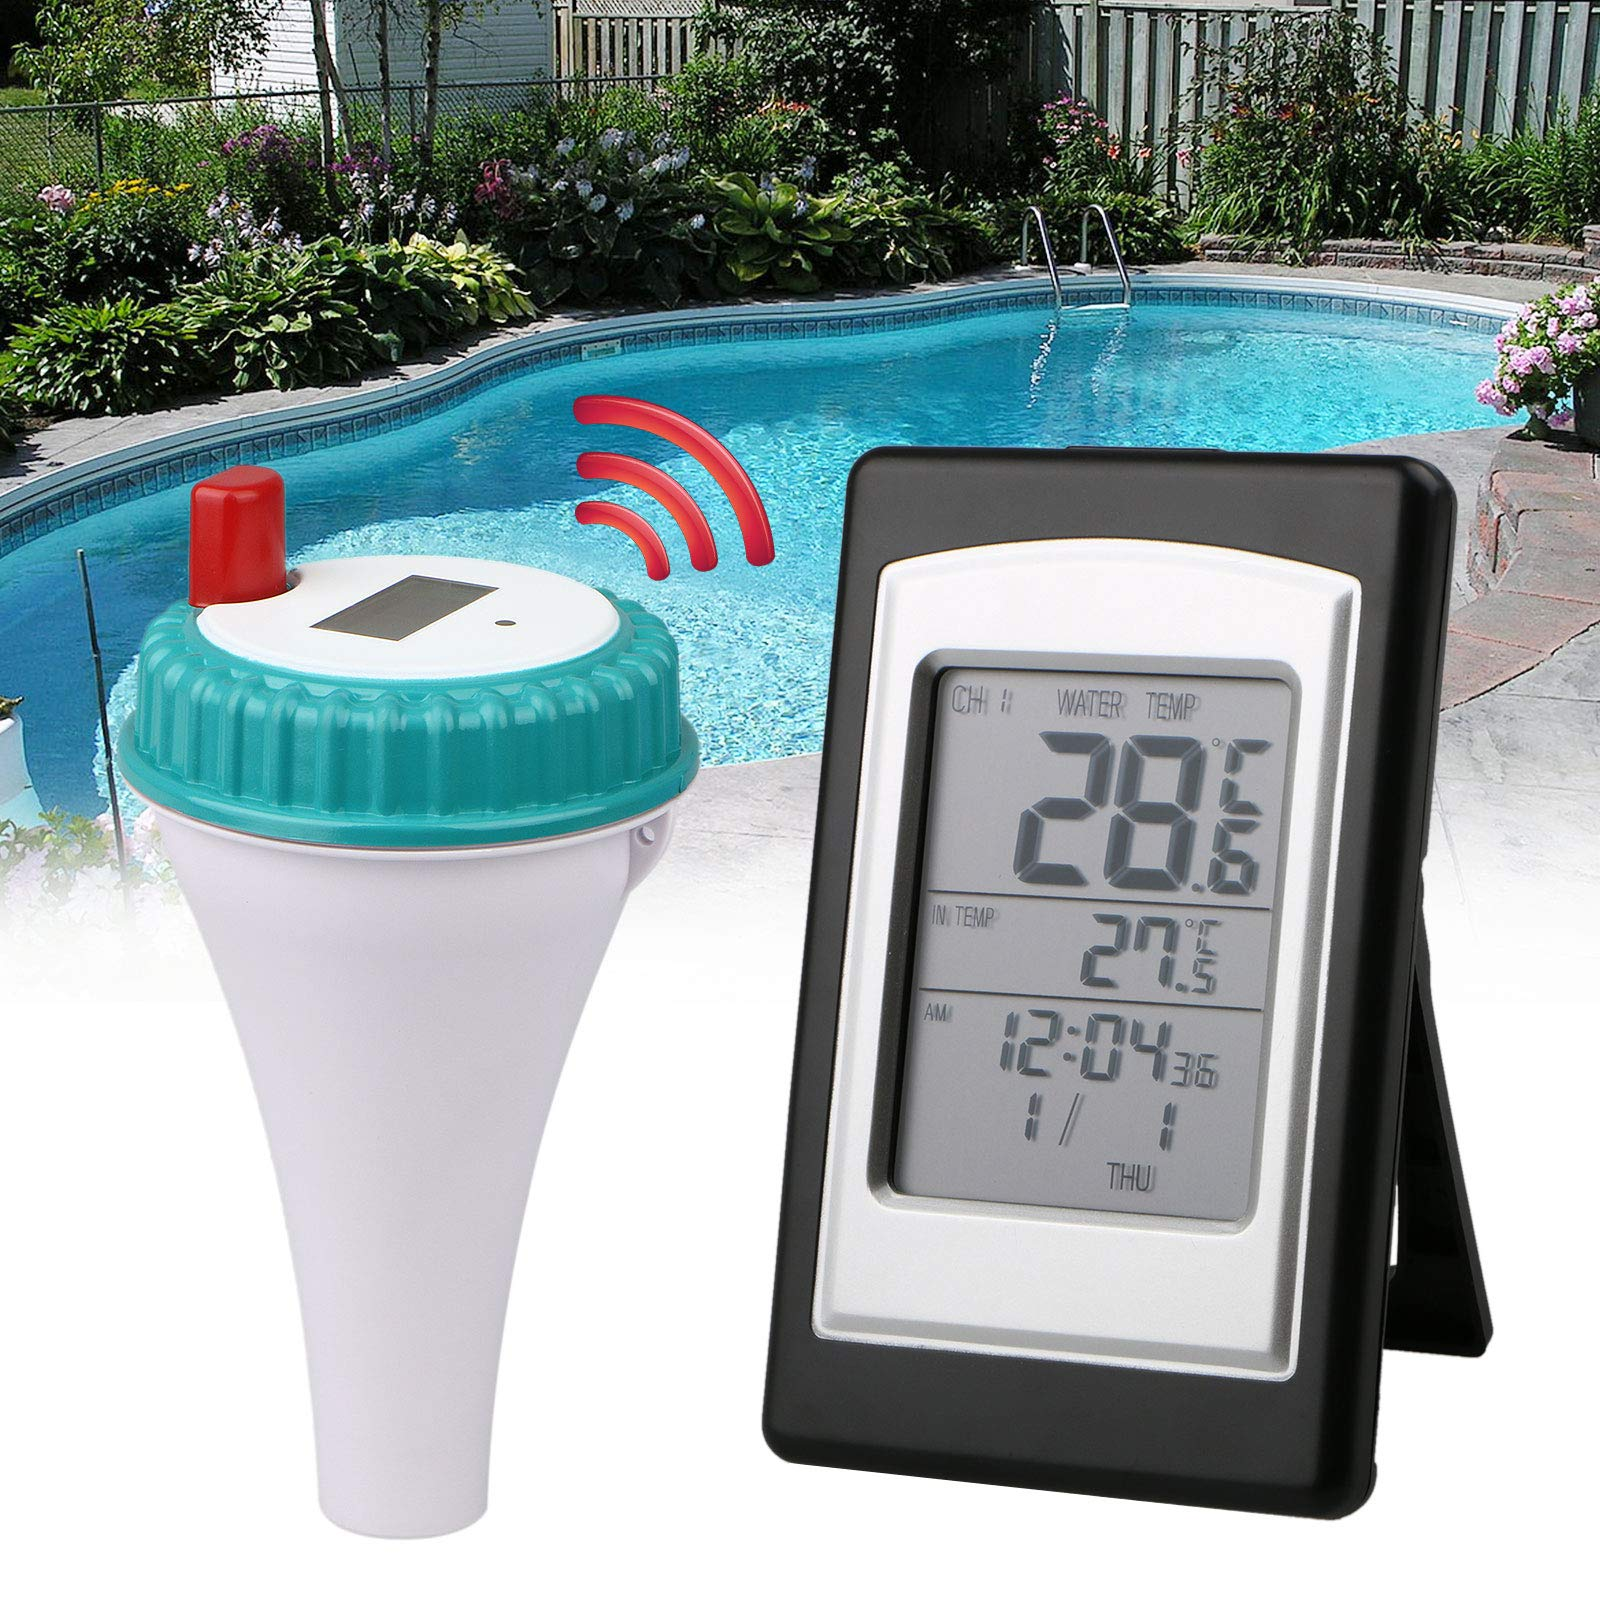 EEEKit Wireless Digtal Waterproof Floating Swimming Pool Thermometer Water Spa Temperature Guage